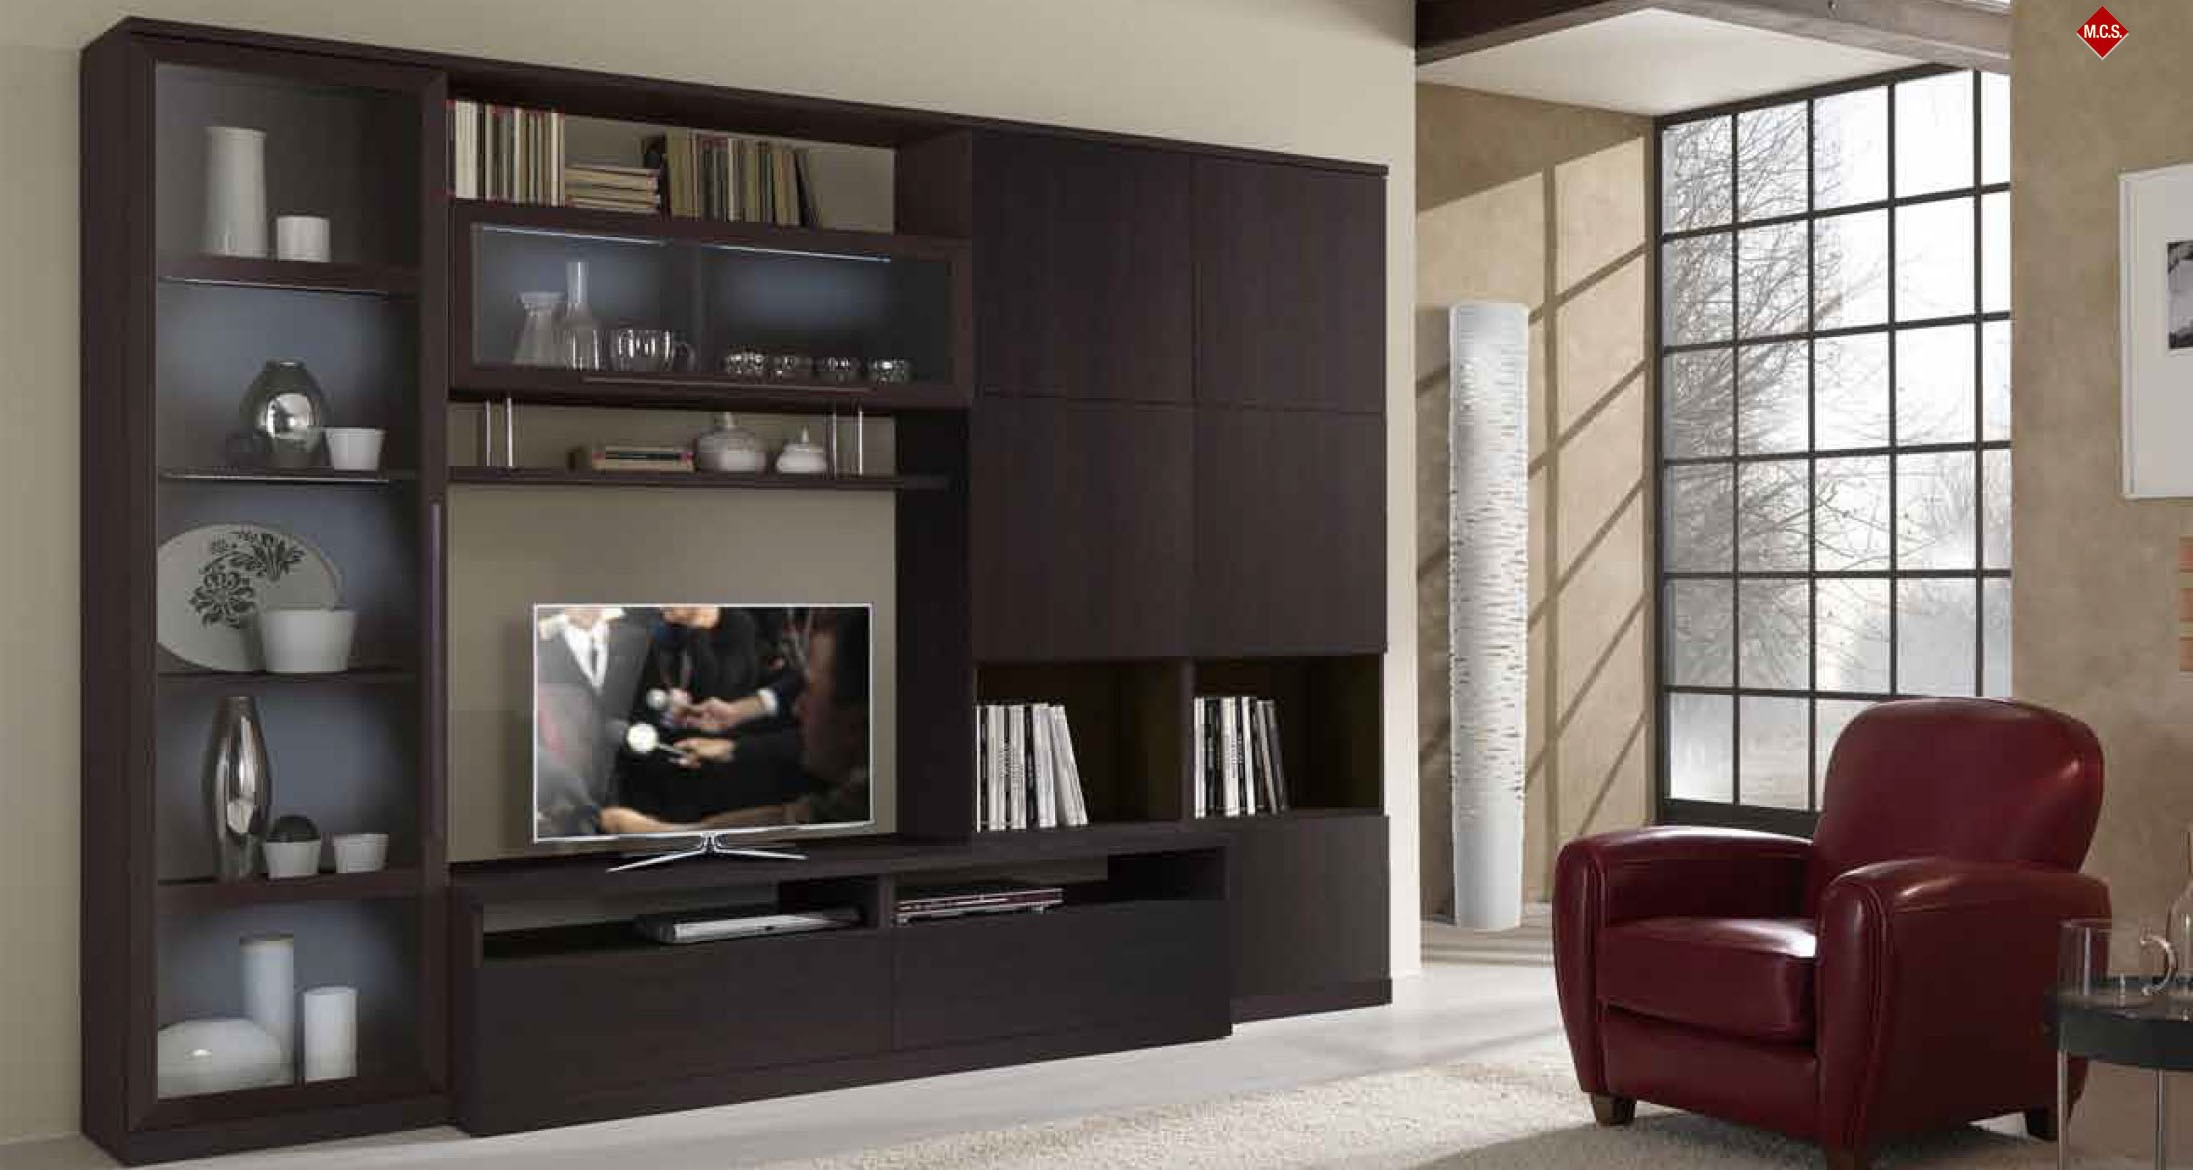 Modern Cabinet Designs For Living Room 20 Modern Tv Unit Design Ideas For Bedroom Living Room With Pictures